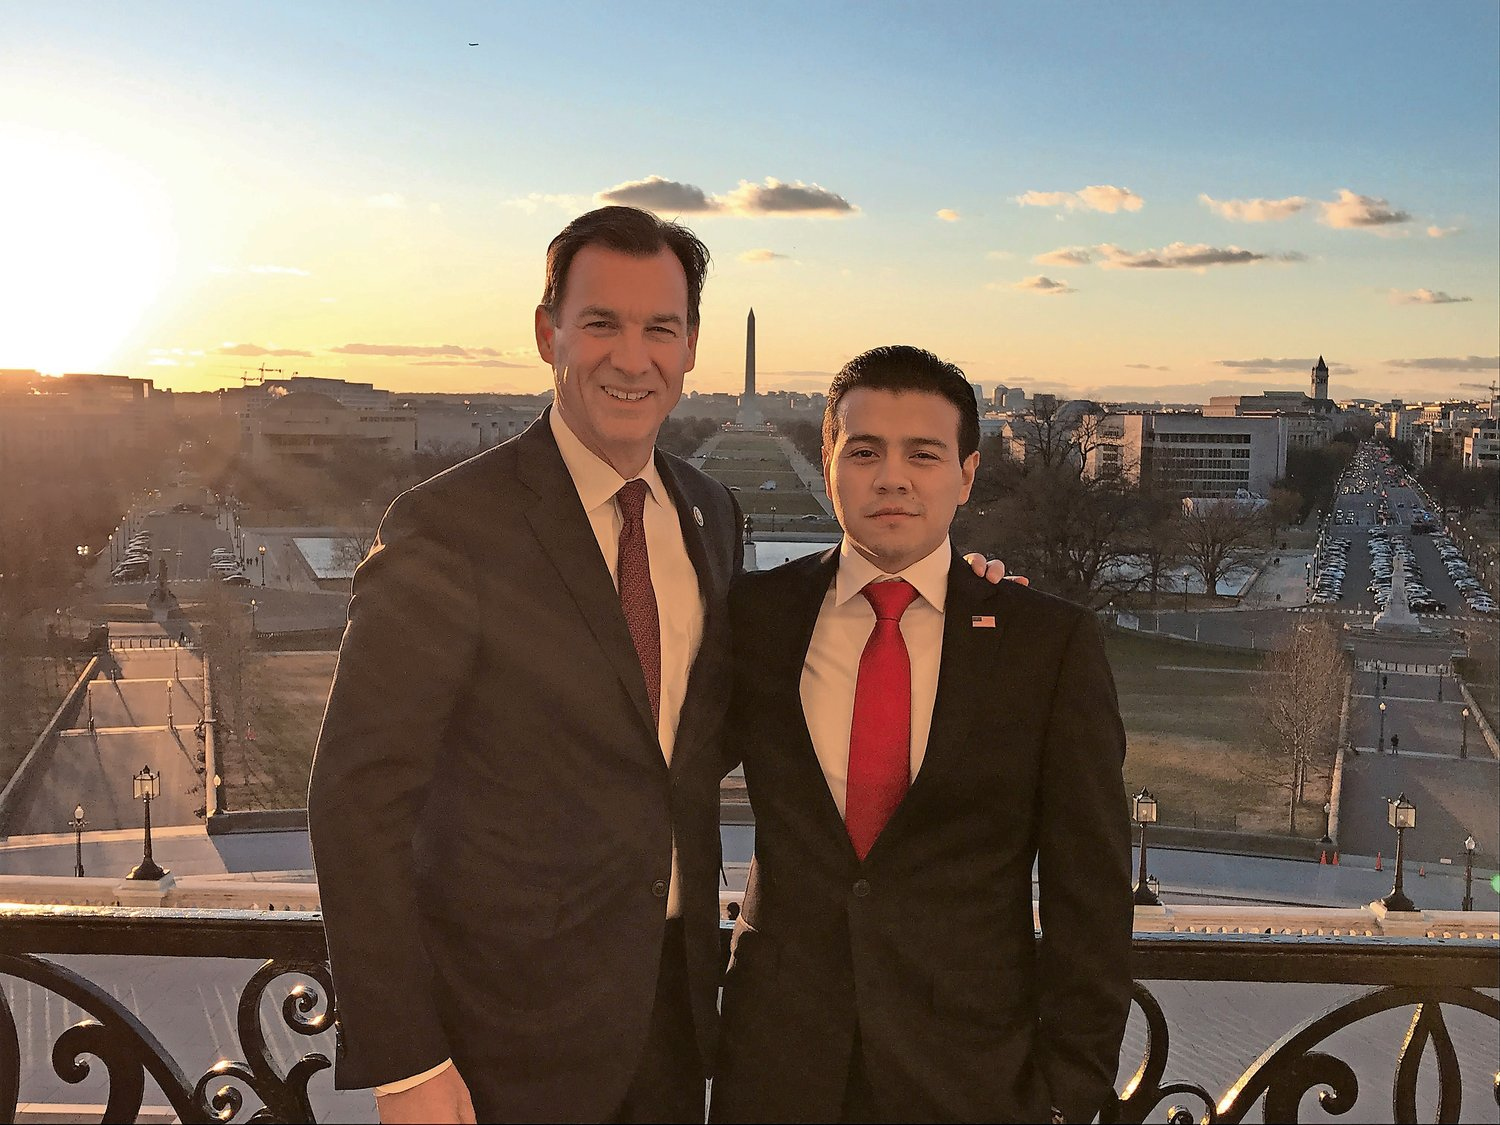 Nelson Melgar accompanied U.S. Rep. Tom Suozzi to President Trump's 2018 State of the Union address. Suozzi has said he believes that what is needed is to put a face on the issue of immigration.